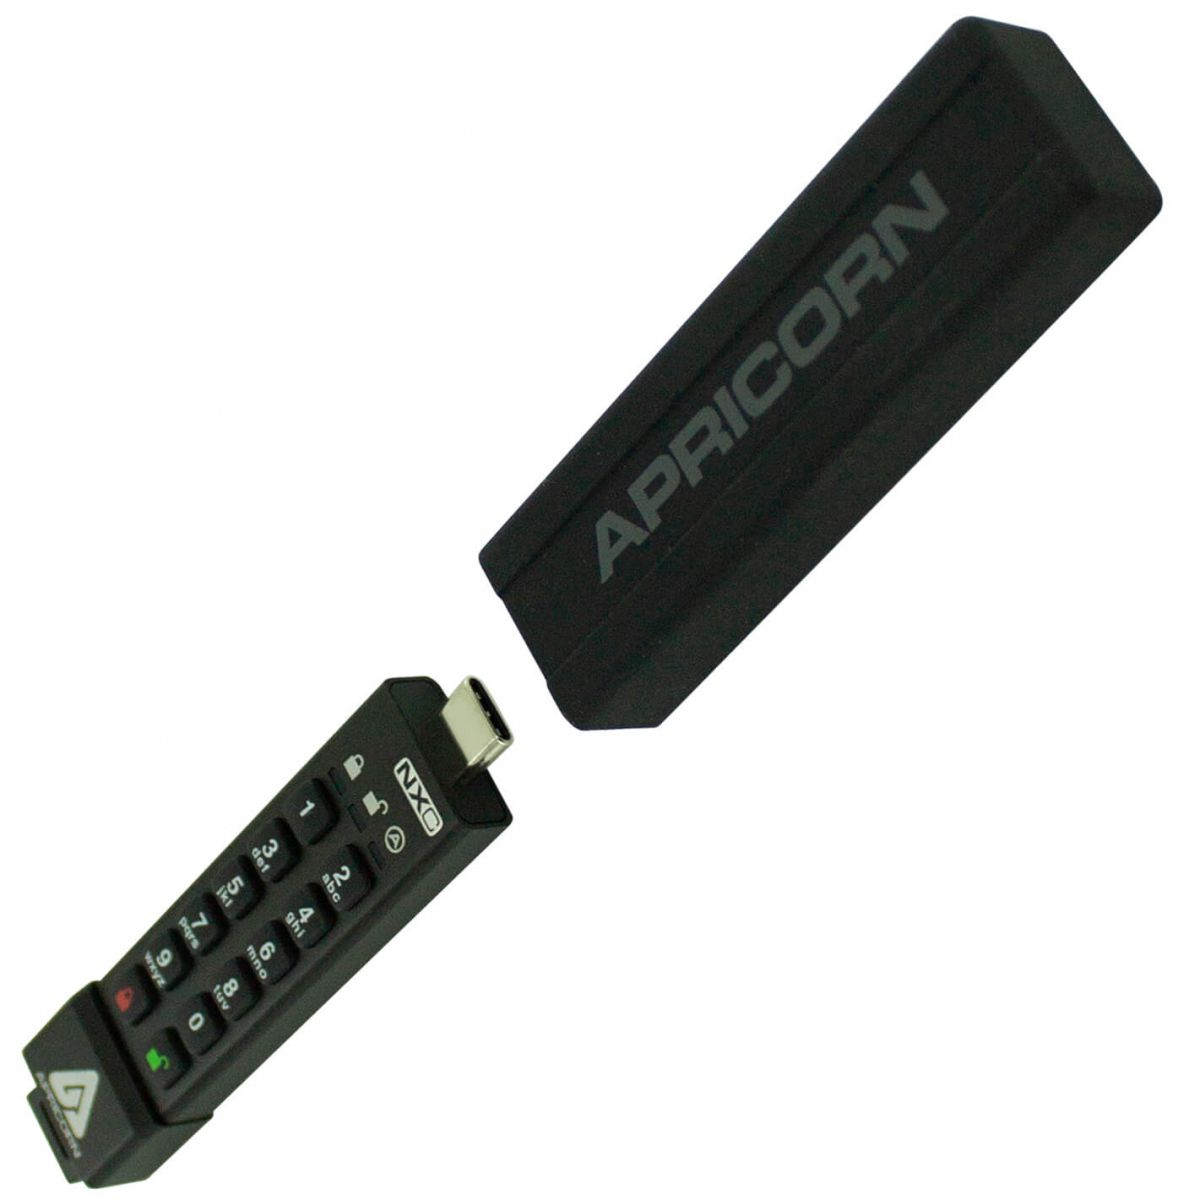 ask3nxc 4gb usbstick with usbc